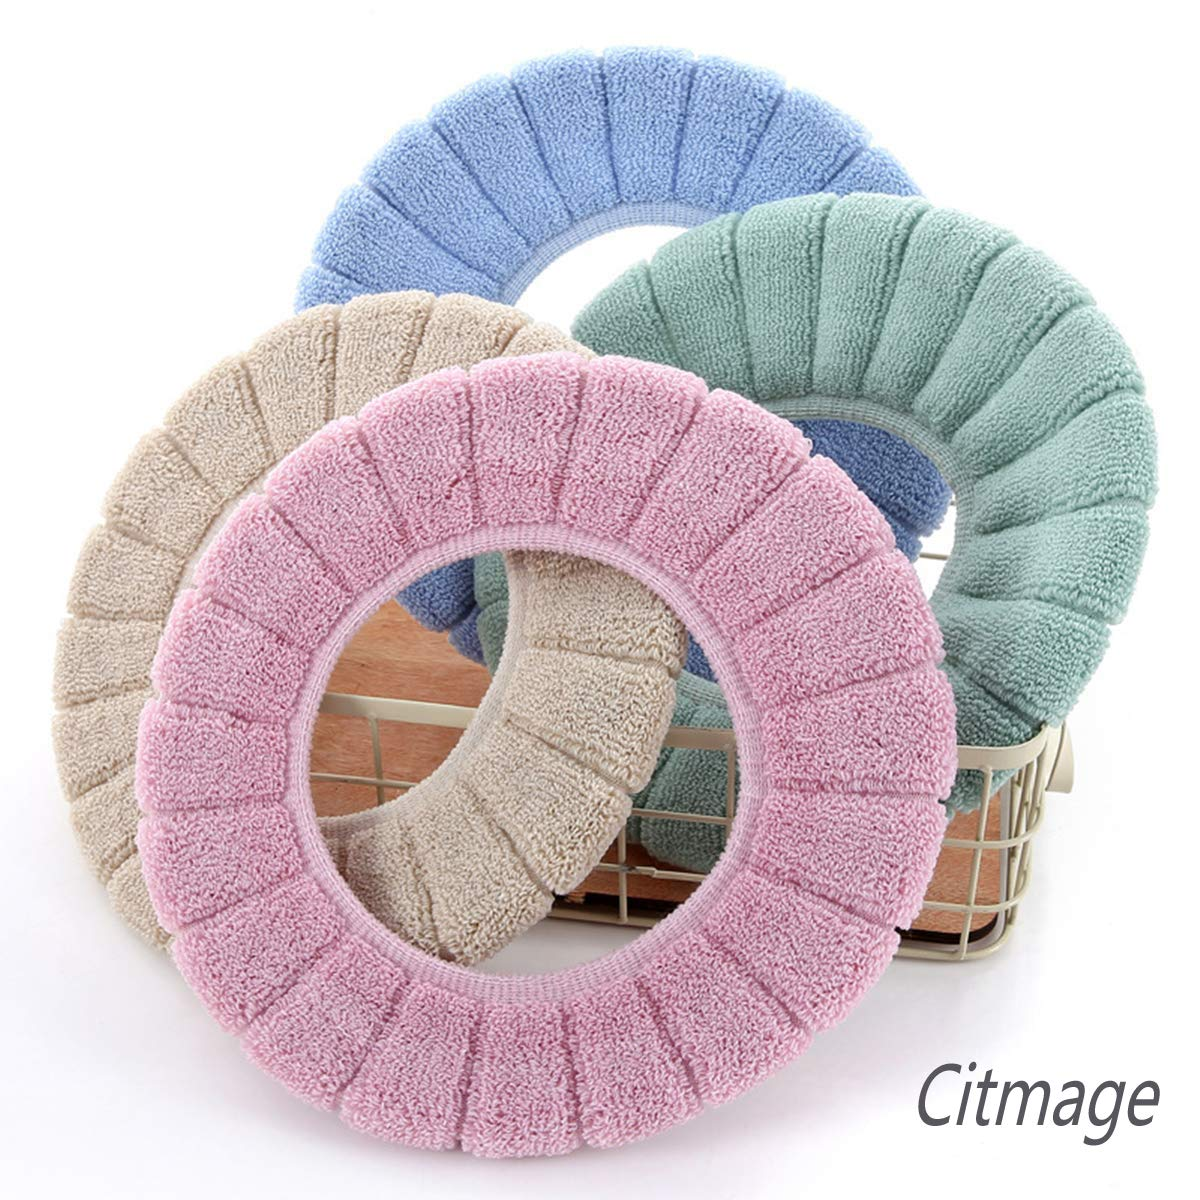 Blue+Pink Citmage Cushioned Toilet Seat Cover Pads Bathroom Soft Fibers Thicker Warmer Stretchable Washable Lid Covers 2Pcs